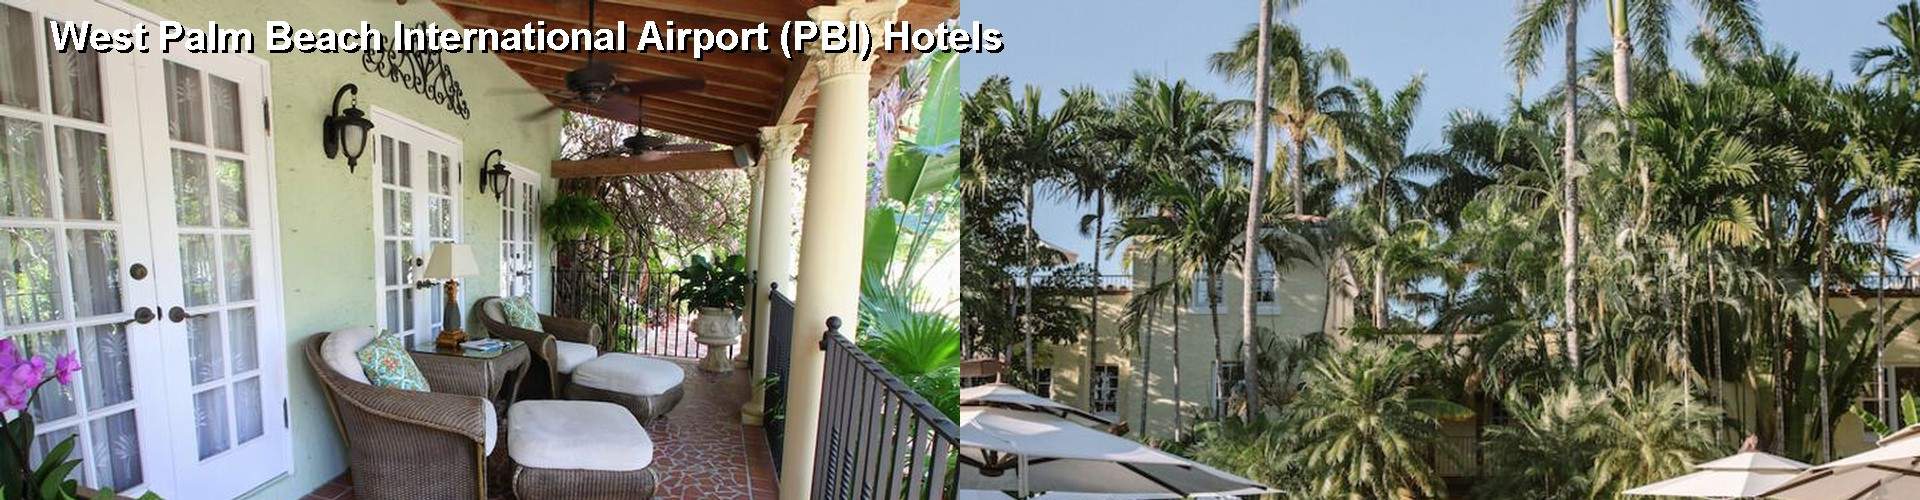 5 Best Hotels near West Palm Beach International Airport (PBI)